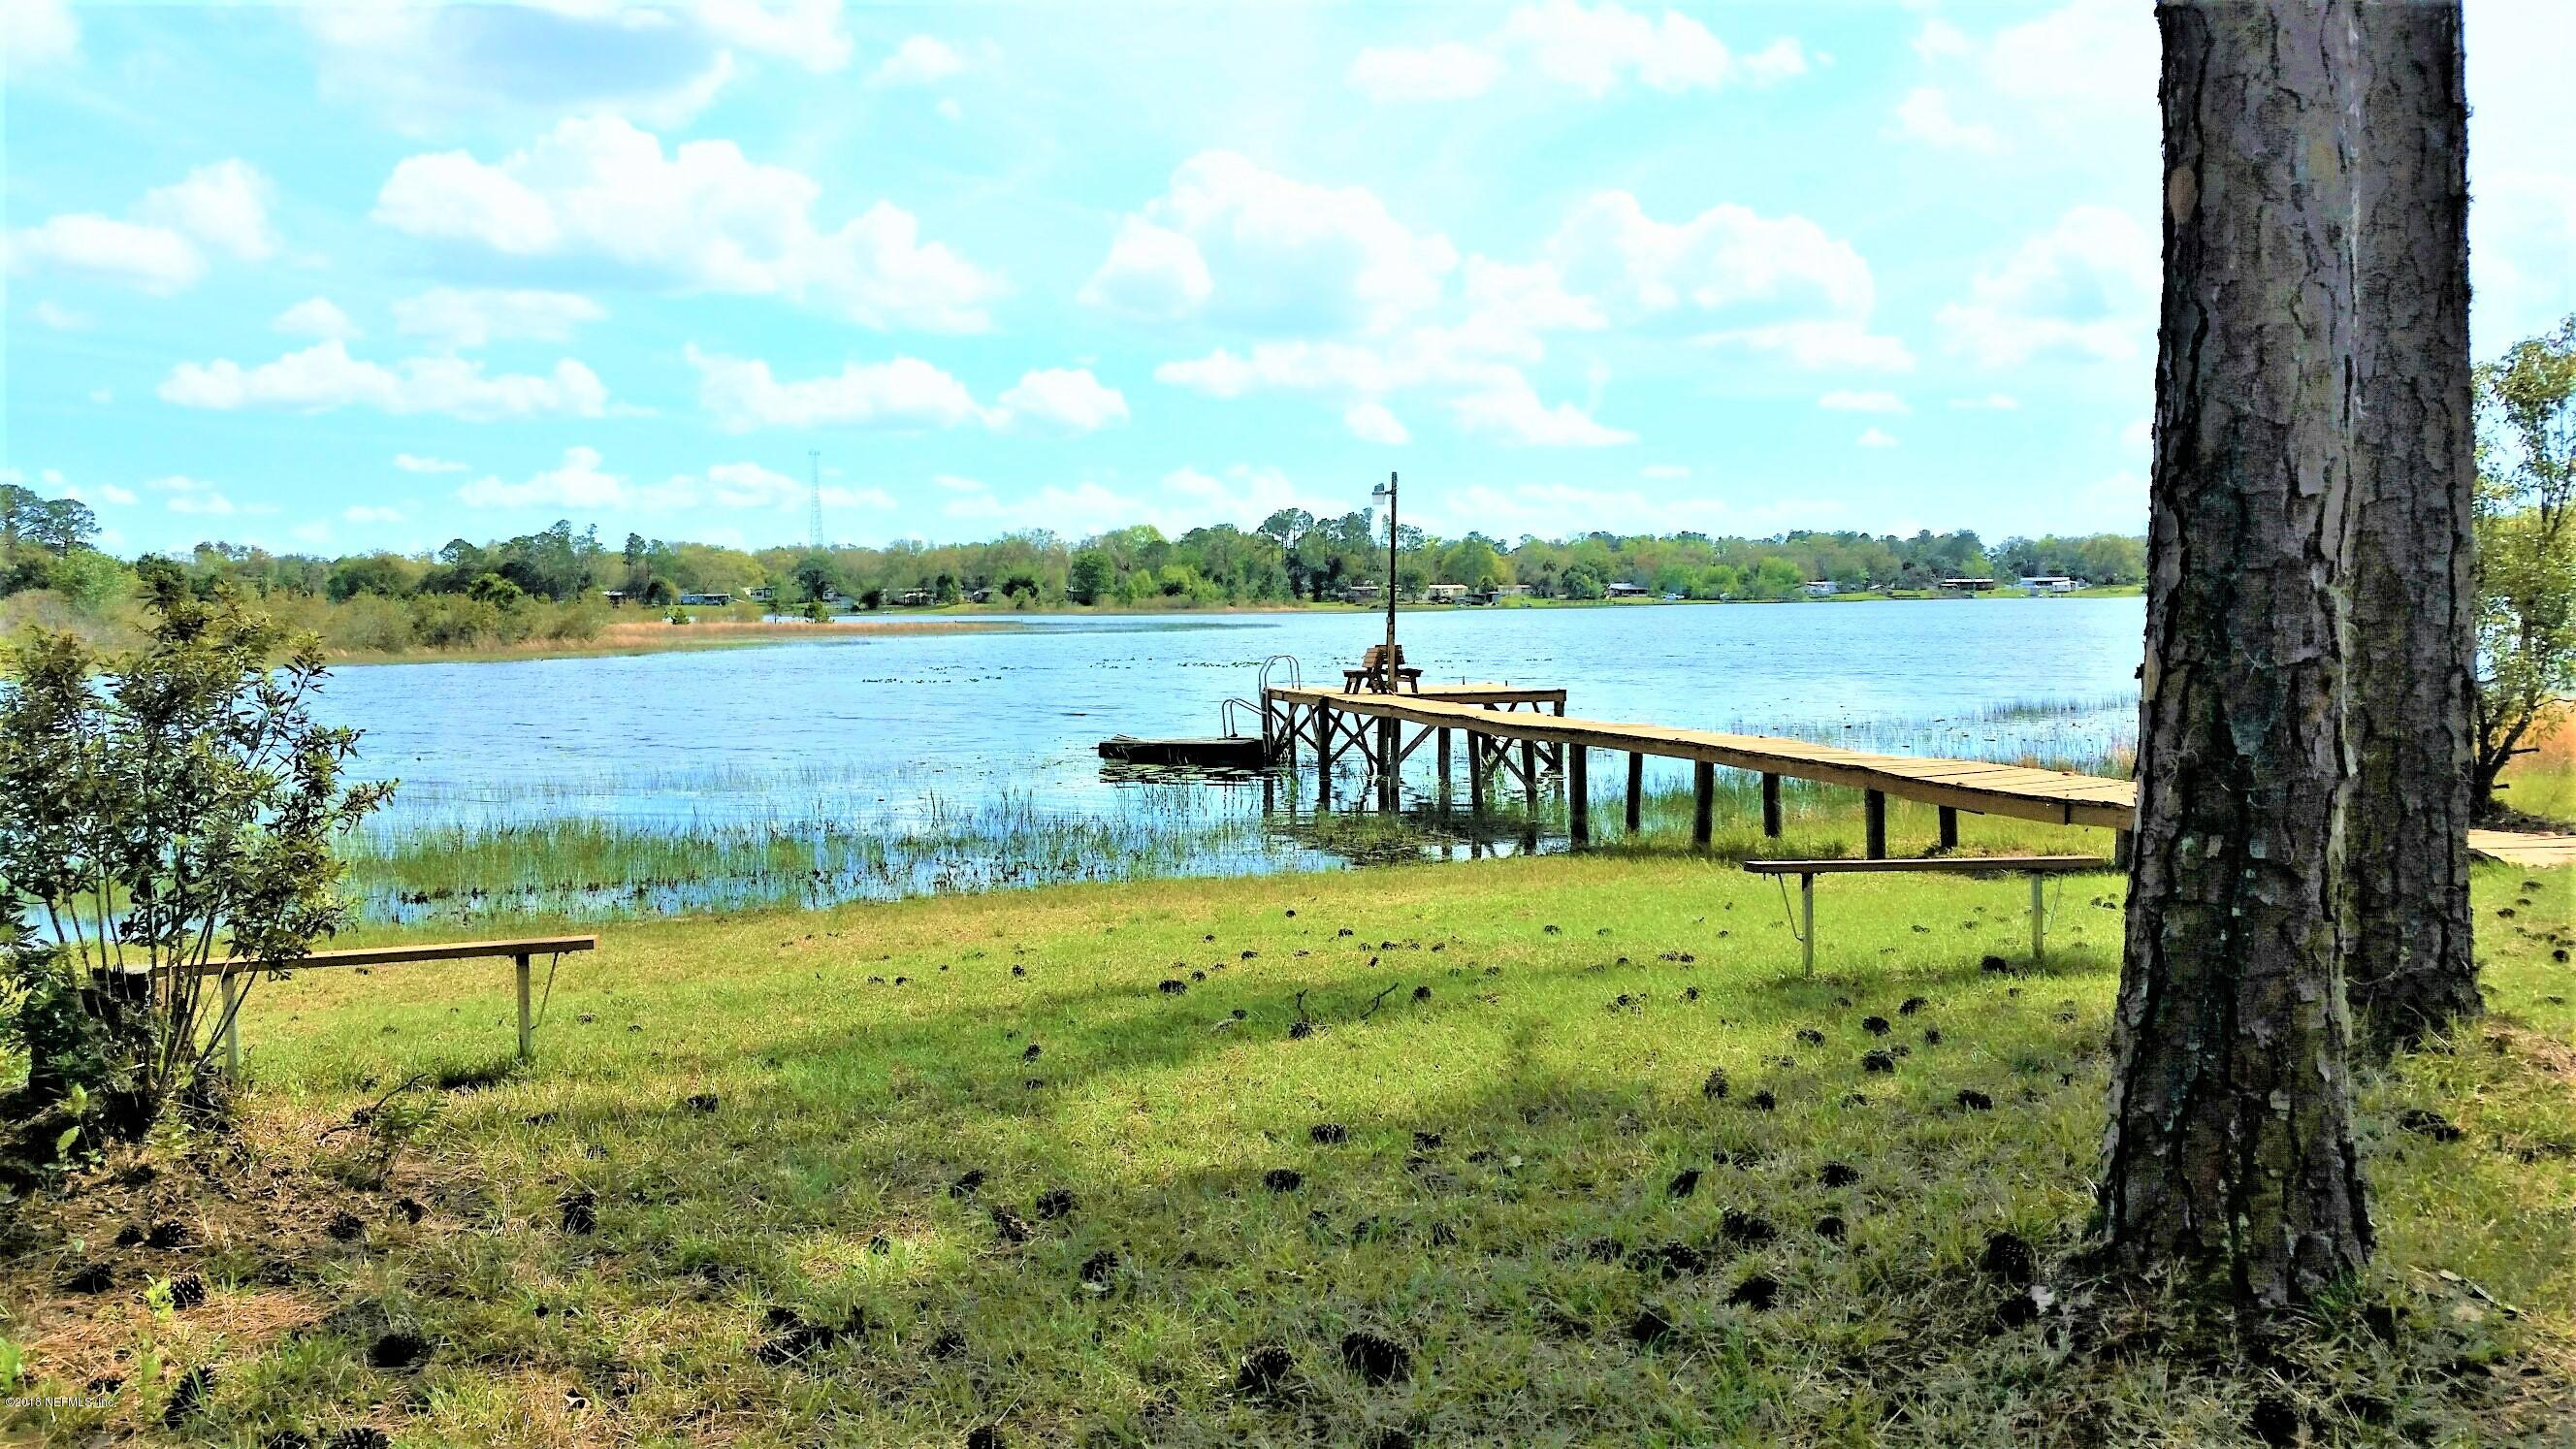 147 SILVER POND, CRESCENT CITY, FLORIDA 32112, 2 Bedrooms Bedrooms, ,2 BathroomsBathrooms,Residential - mobile home,For sale,SILVER POND,923214